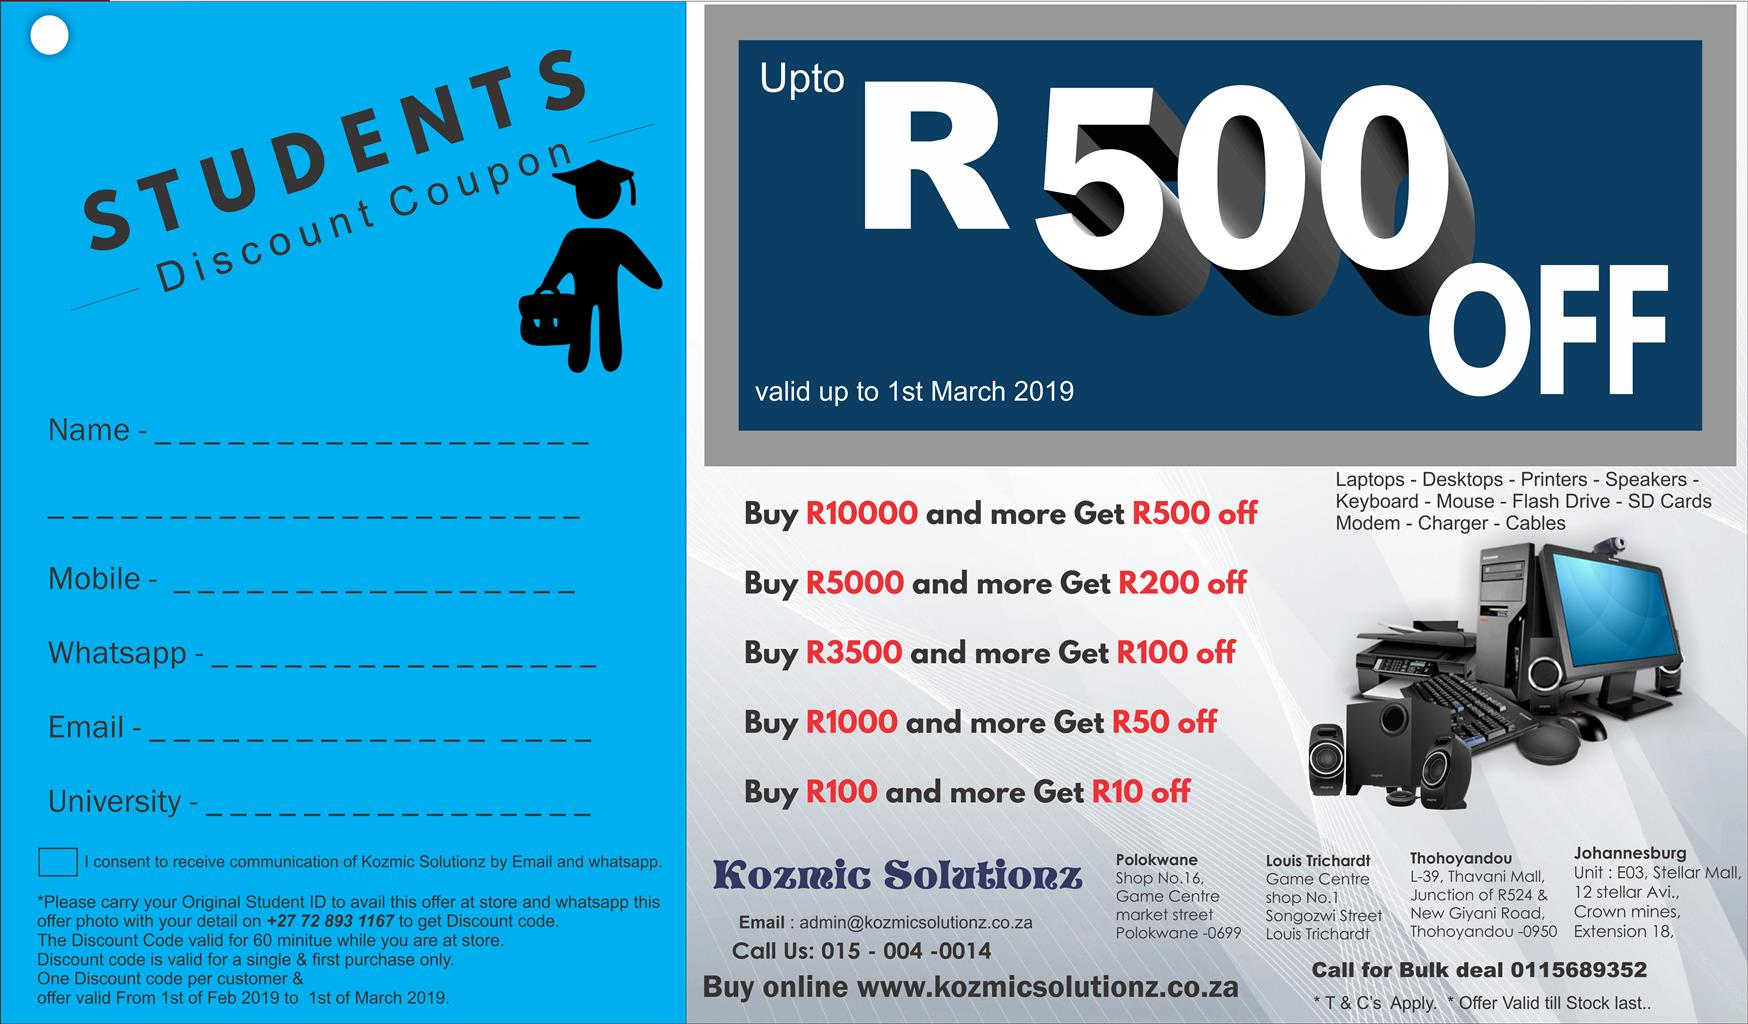 Student Special discounts